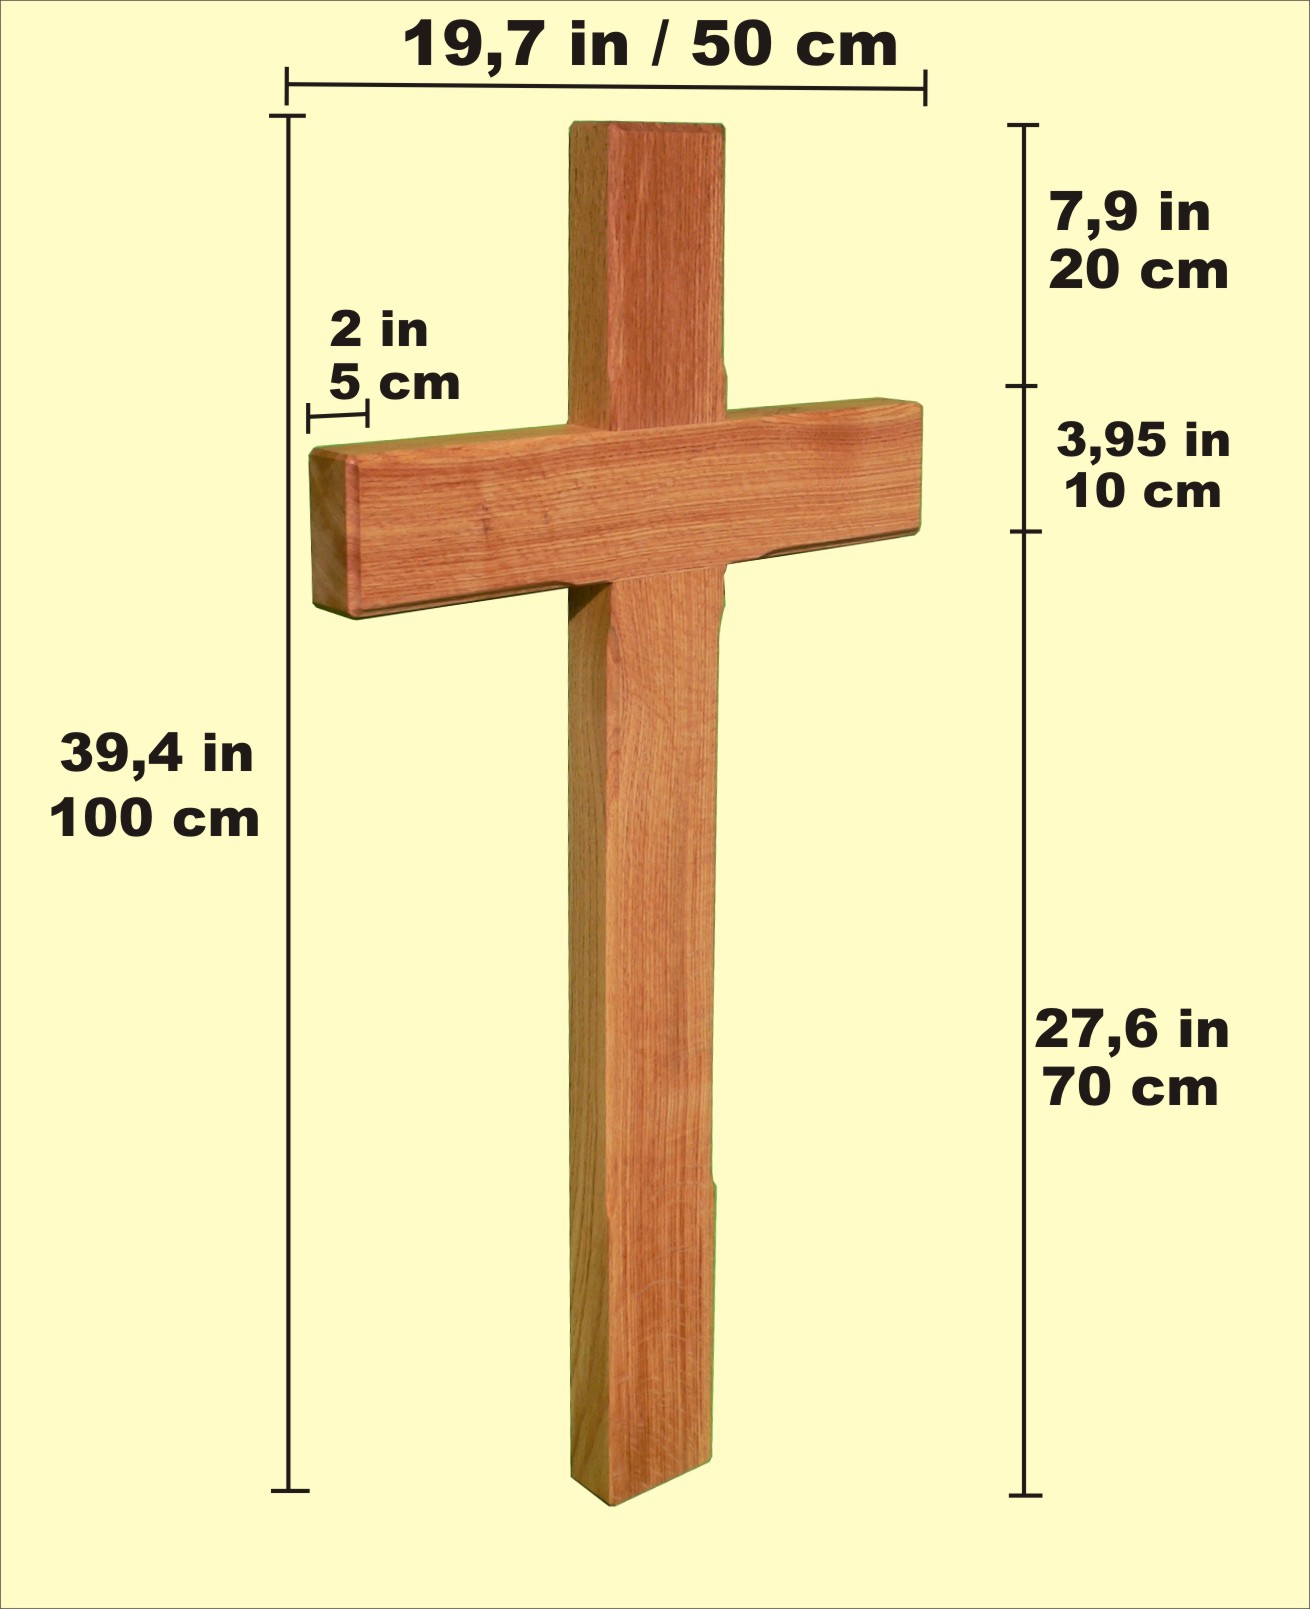 enduring wooden crosses engraved lasting grave markers for sale